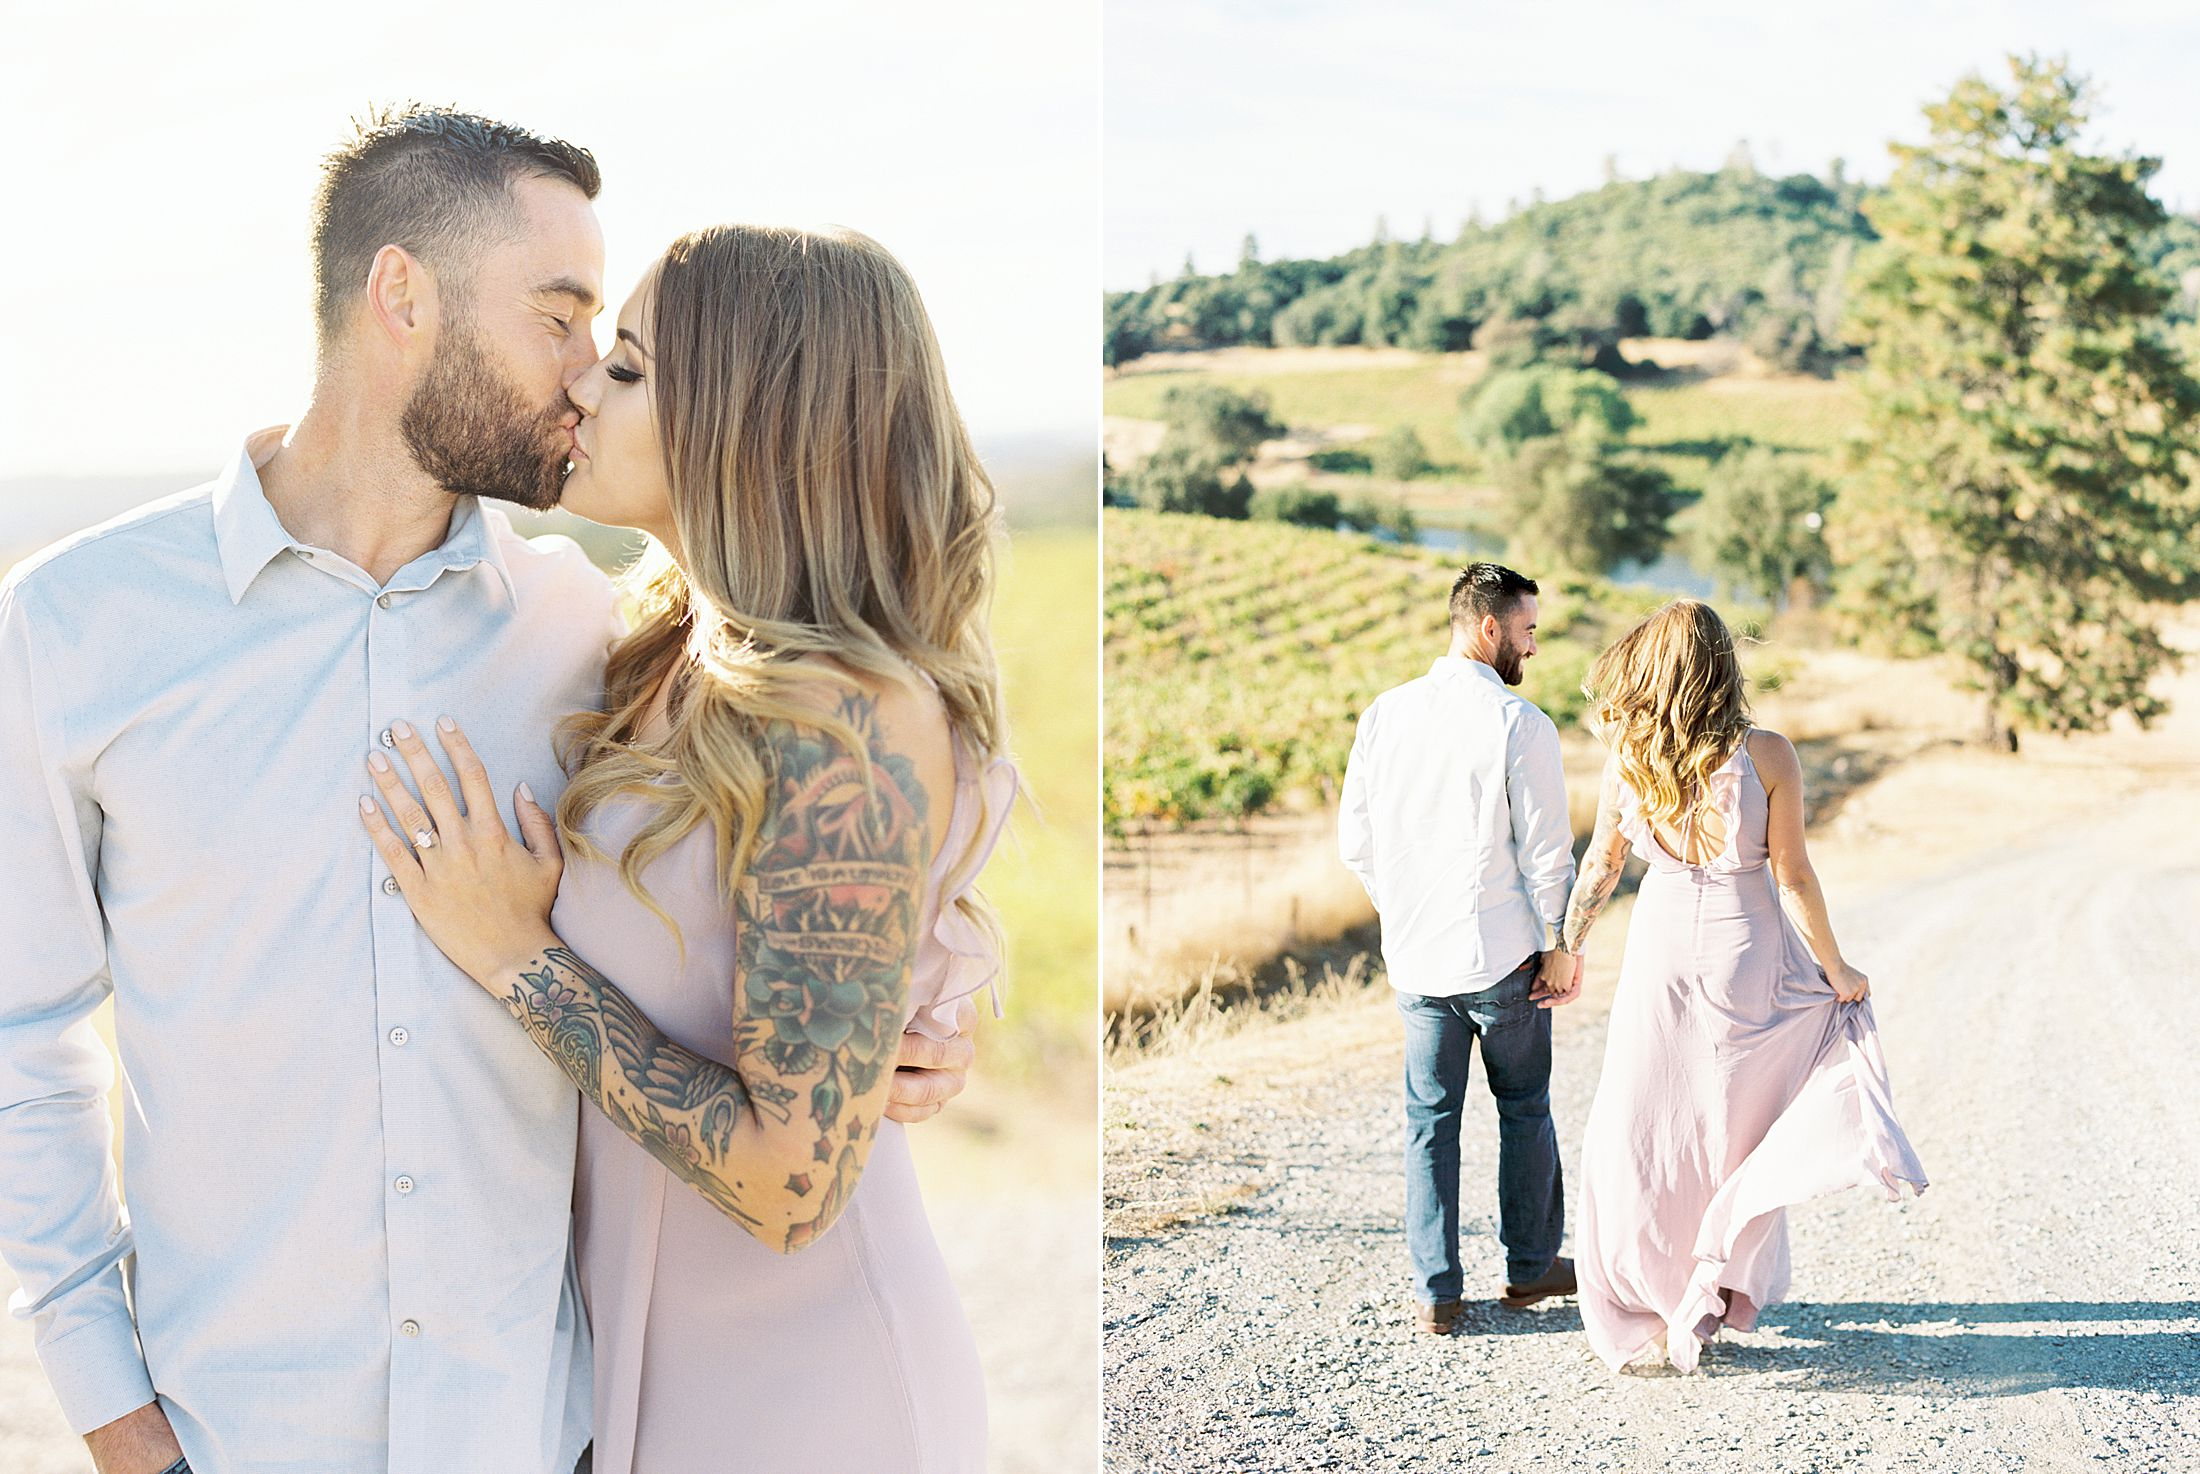 Helwig Winery Engagement Session - Steffanie and Rich - Jenn Robirds Events - Ashley Baumgartner - Sacramento Wedding Photographer - Private Estate Wedding Photographer - Helwig WInery Wedding_0077.jpg